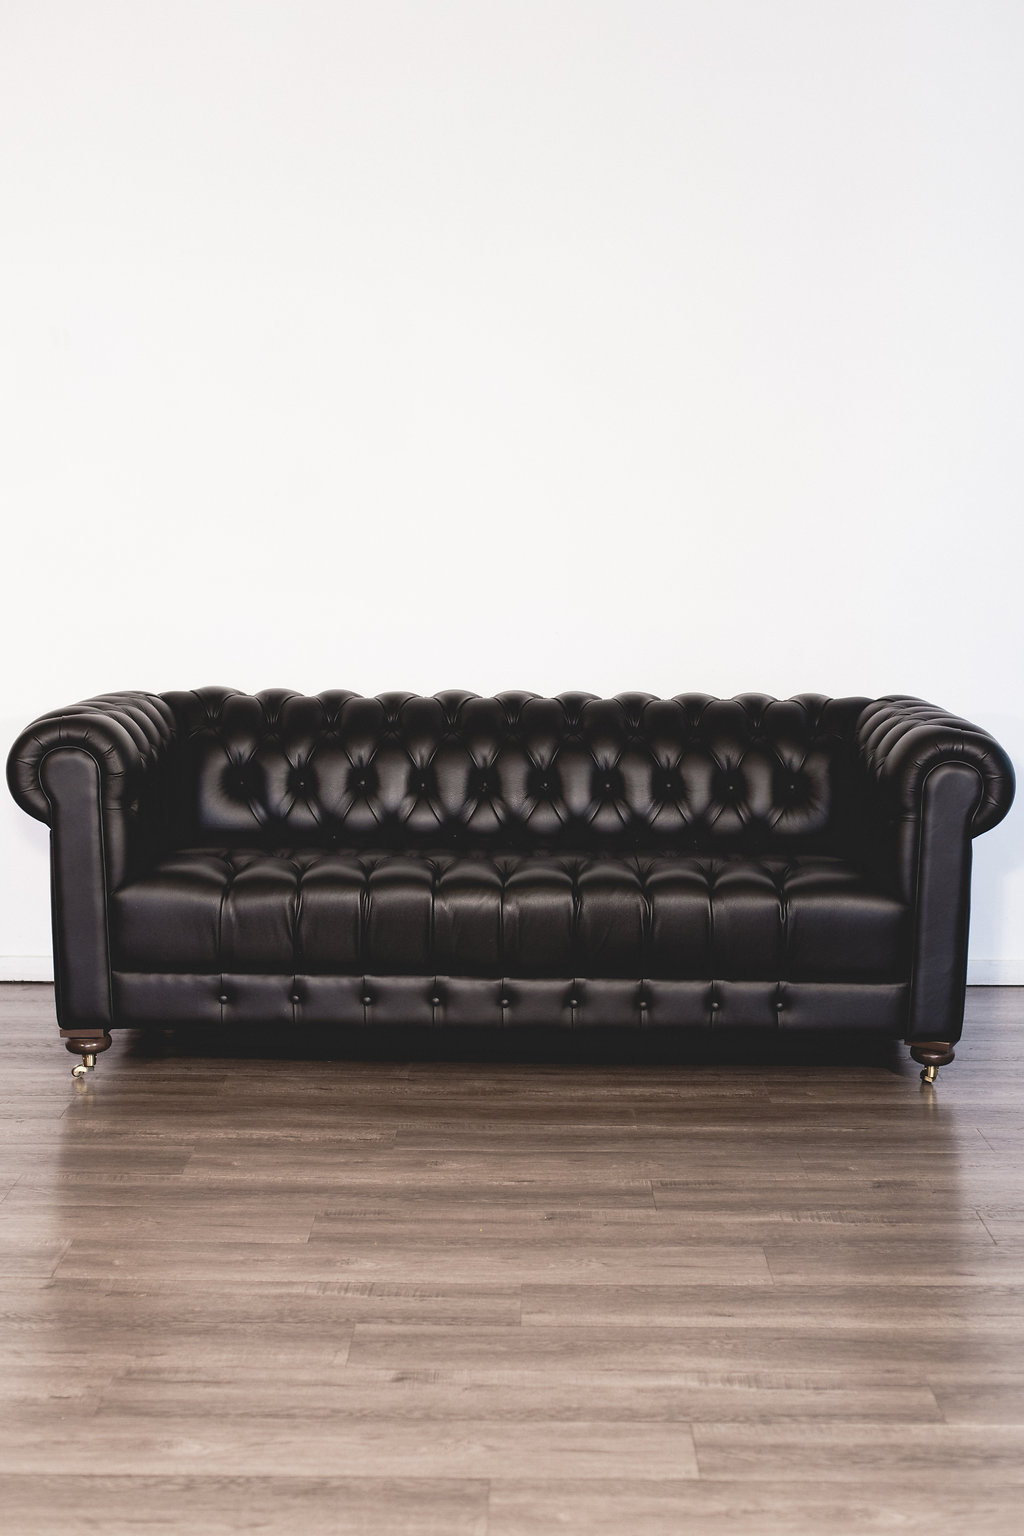 Black Leather Sofa Quantity: 1